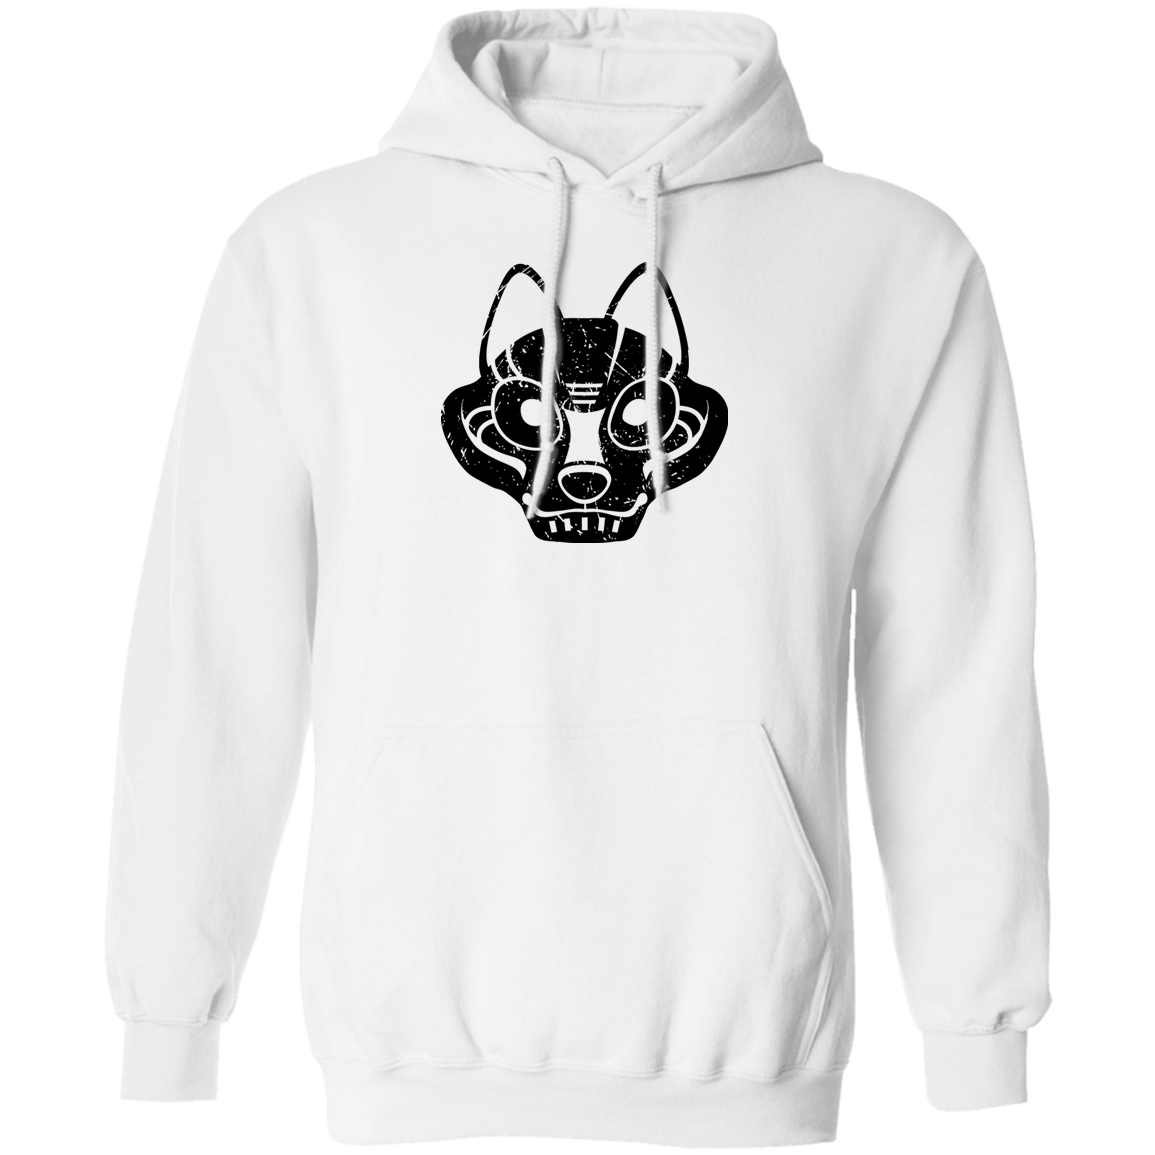 Black Distressed Emblem Hoodies for Adults (Wolf/Wolf Squad)